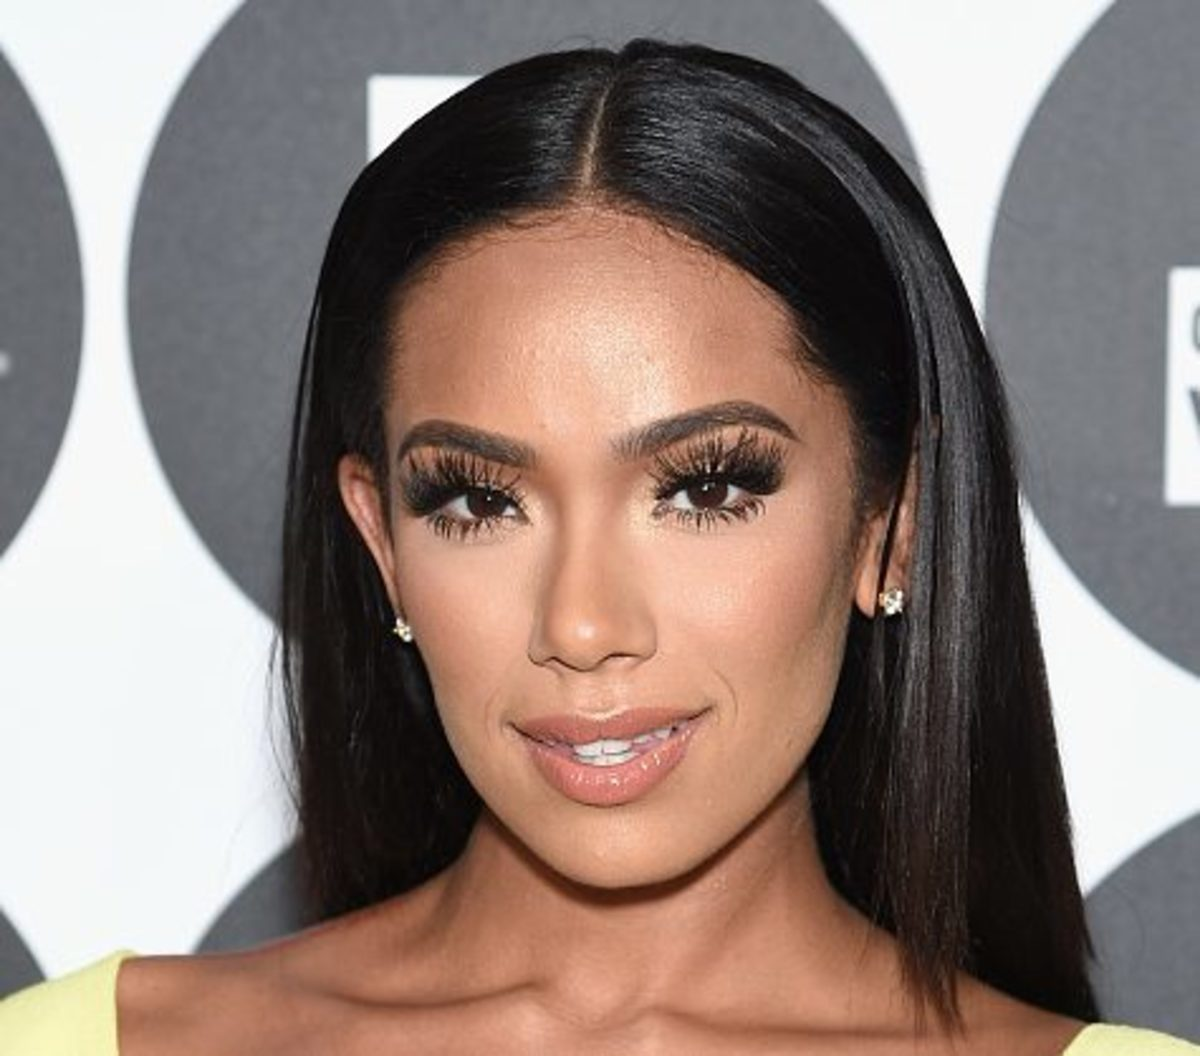 Erica Mena Makes Fans' Day With This Motivational Message